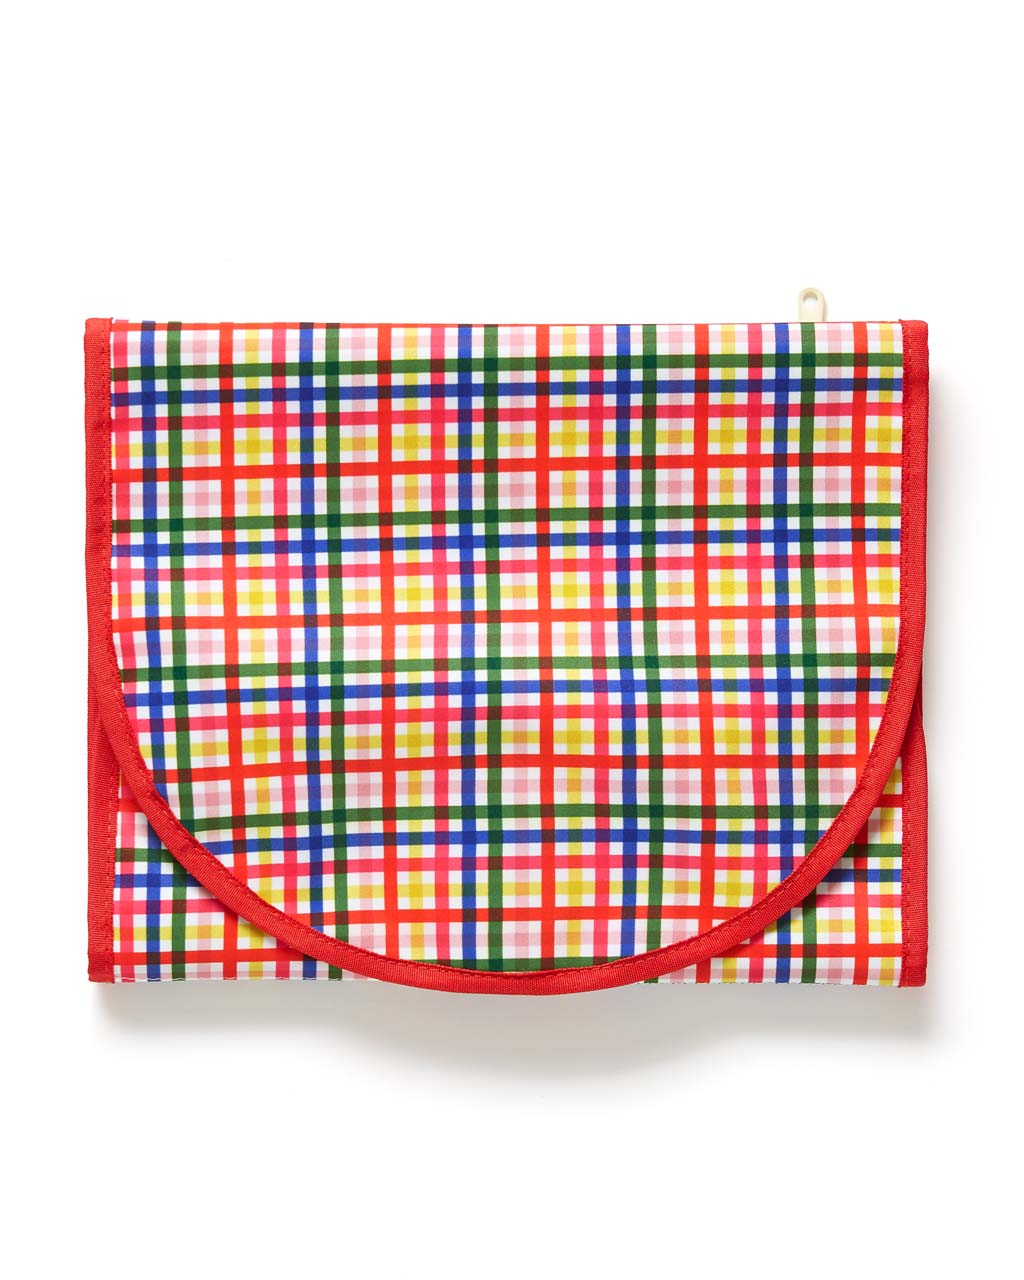 The Getaway Travel Organizer comes in a rainbow plaid pattern.